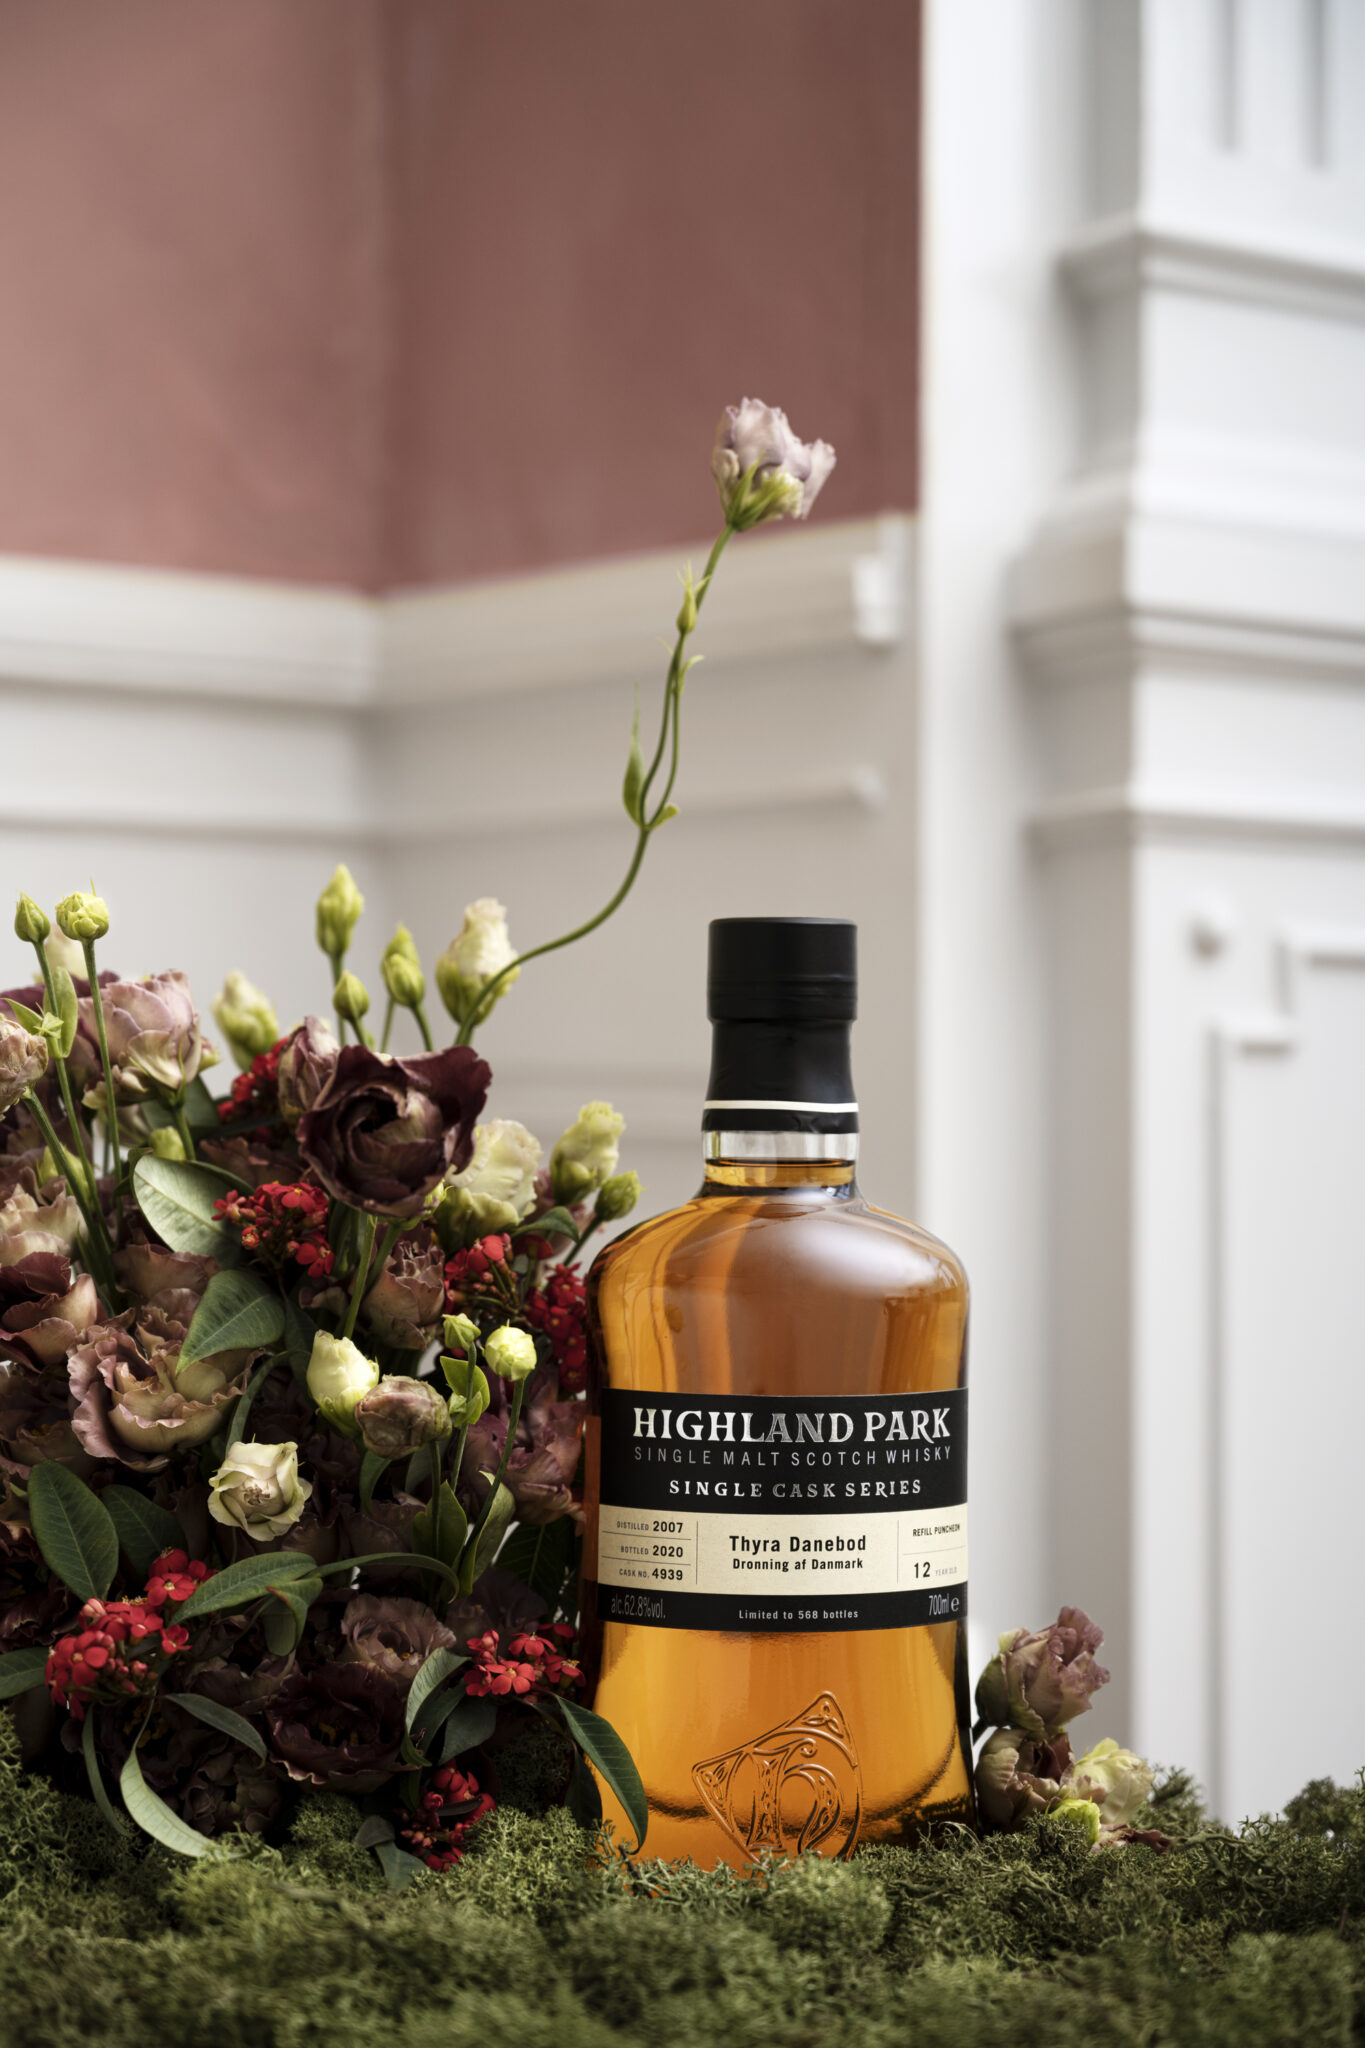 Highland Park shot its campaign for three single cask whiskies in the showroom (Styling: Jonas Pejstrup/Foto: Trine Sand Skjøldberg)